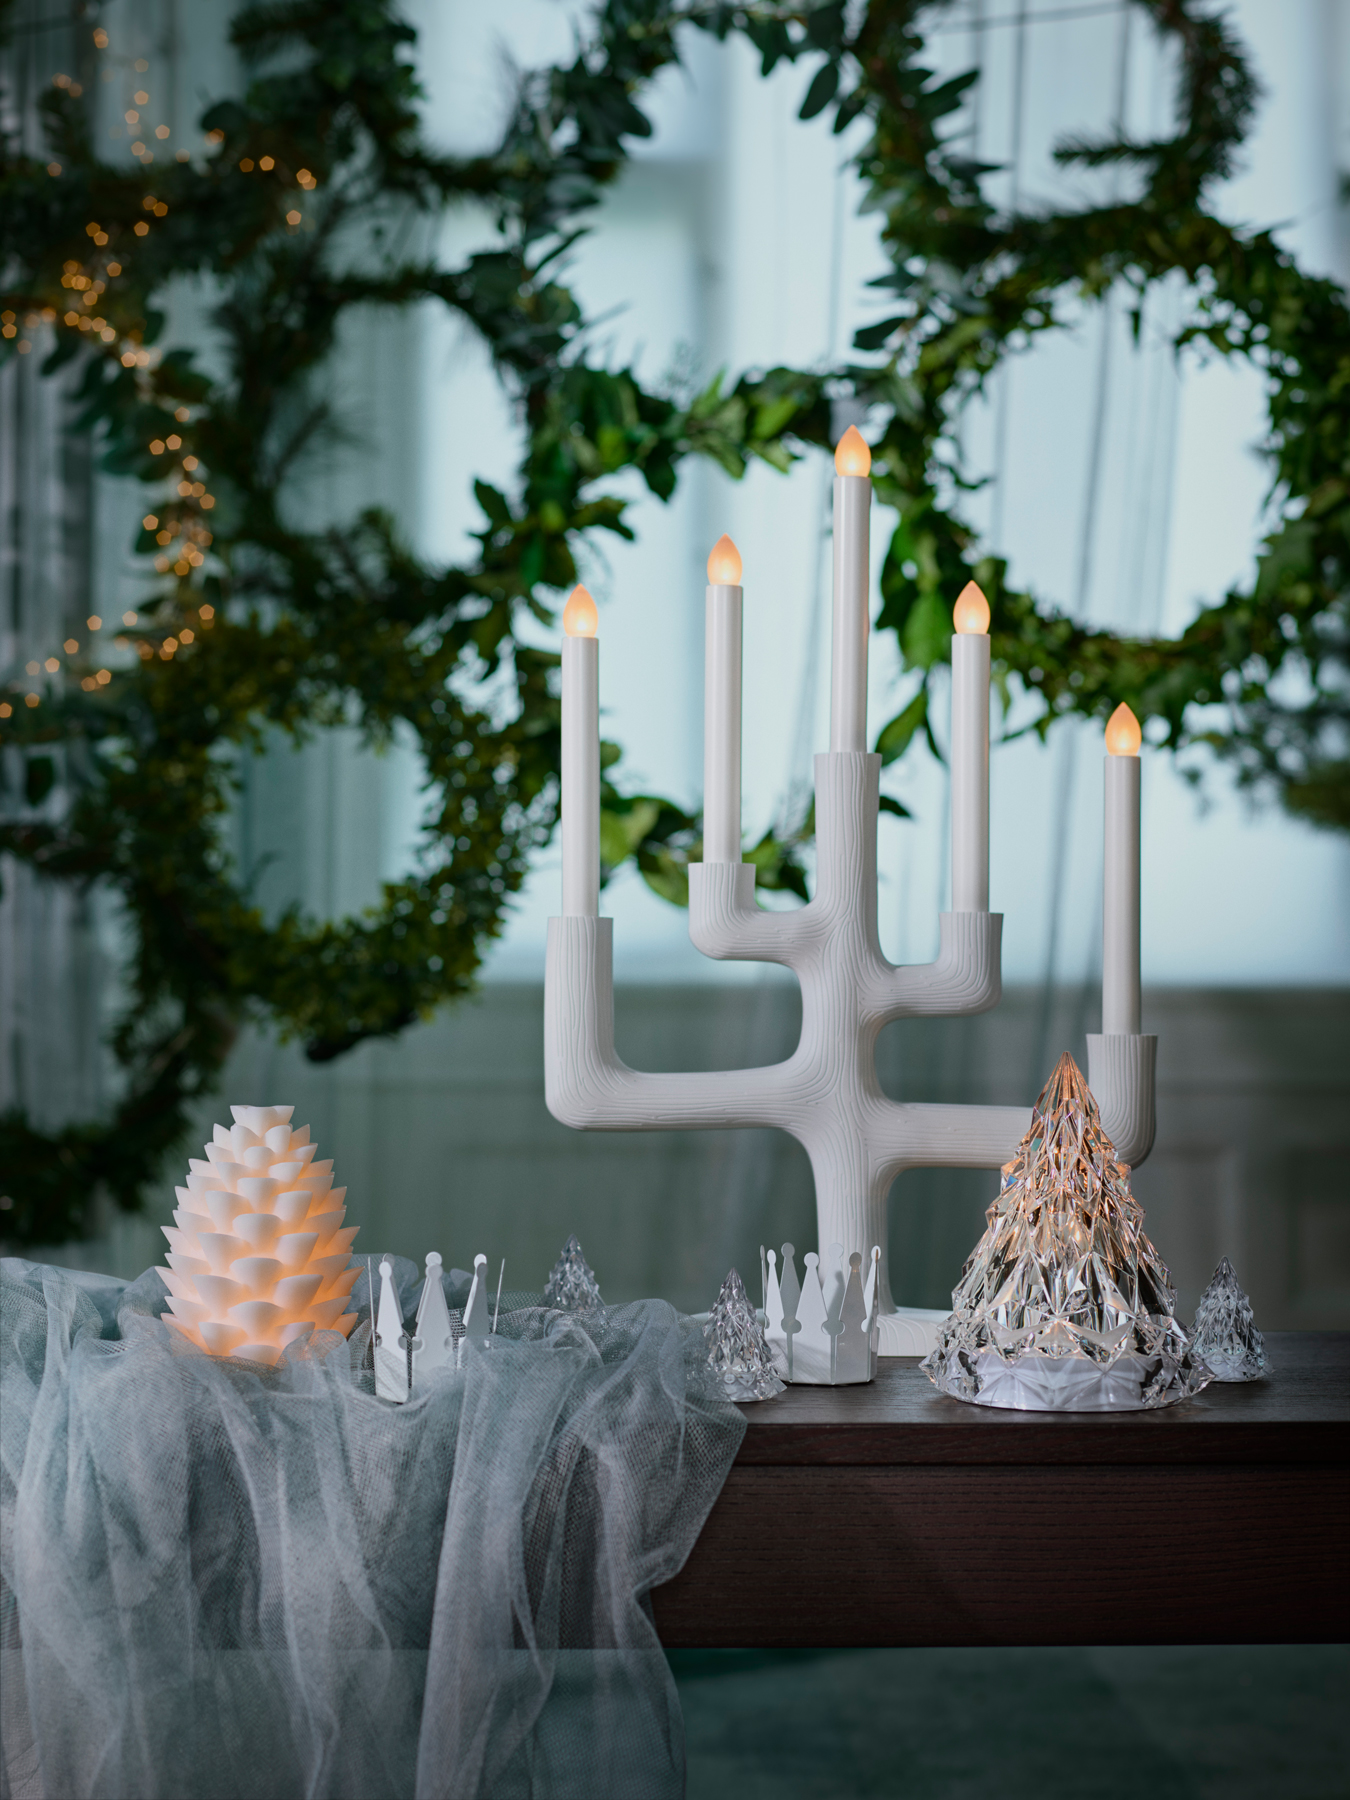 IKEA 2018 Holiday/Winter Collection STRÅLA LED 5-Arm Candelabra Branch